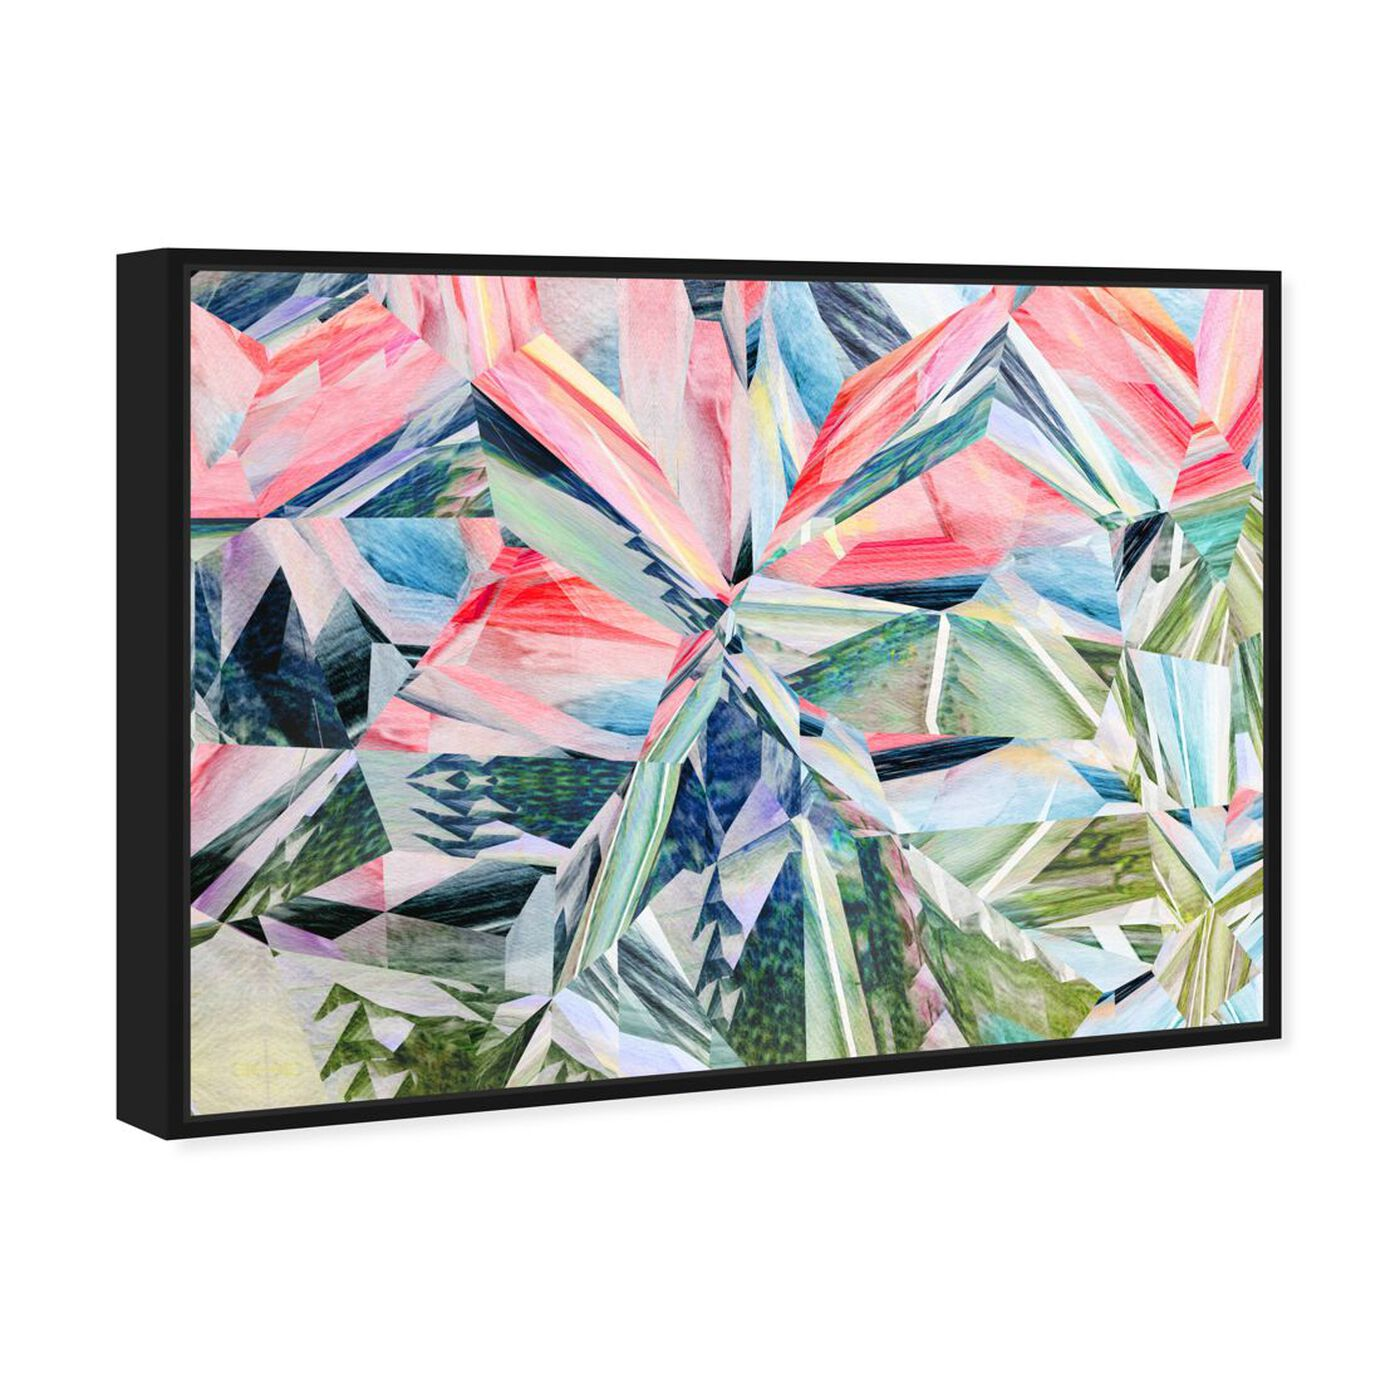 Angled view of Right Choice featuring abstract and geometric art.